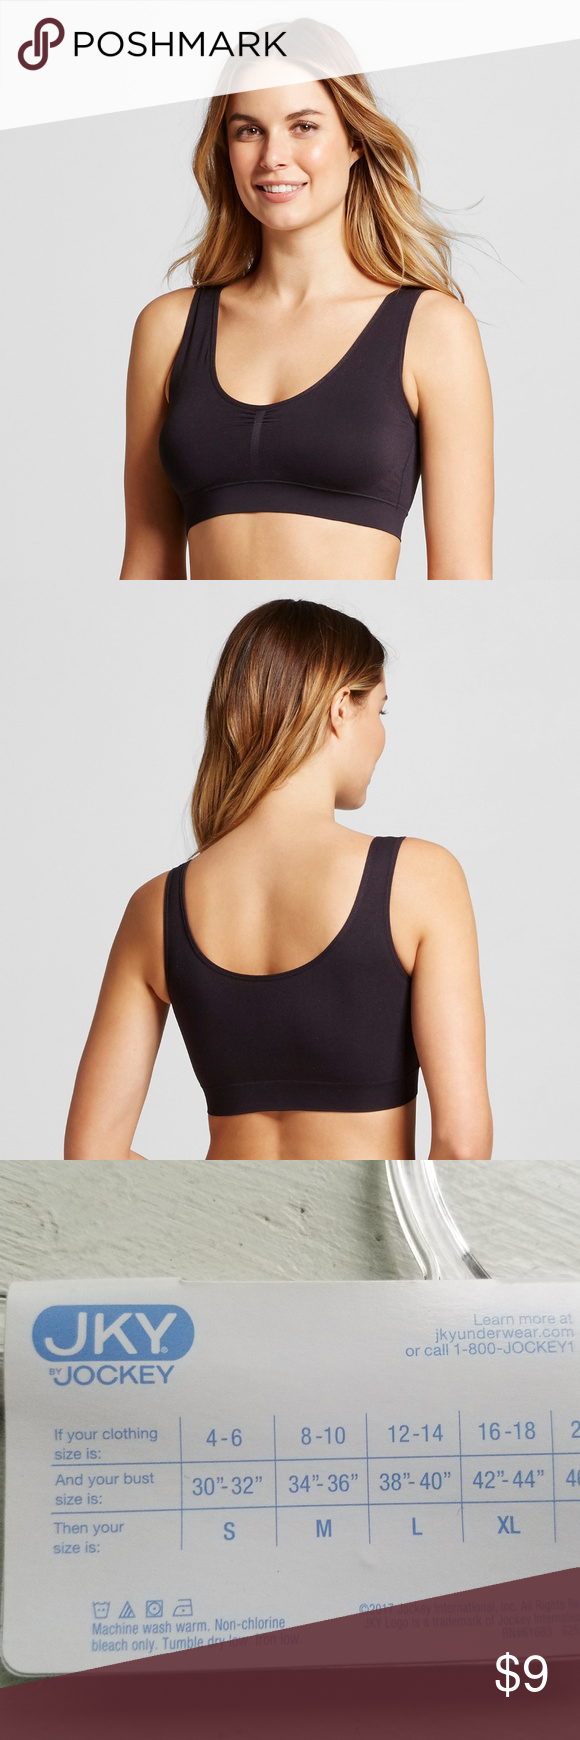 8694cebc34b238 JKY Jockey Women s Seamfree Tank Strap Bralette Material  92.0% Nylon and  8.0% Spandex Features  Pullover Neckline  Scoop Sheerness  Opaque Underwire  Type  ...